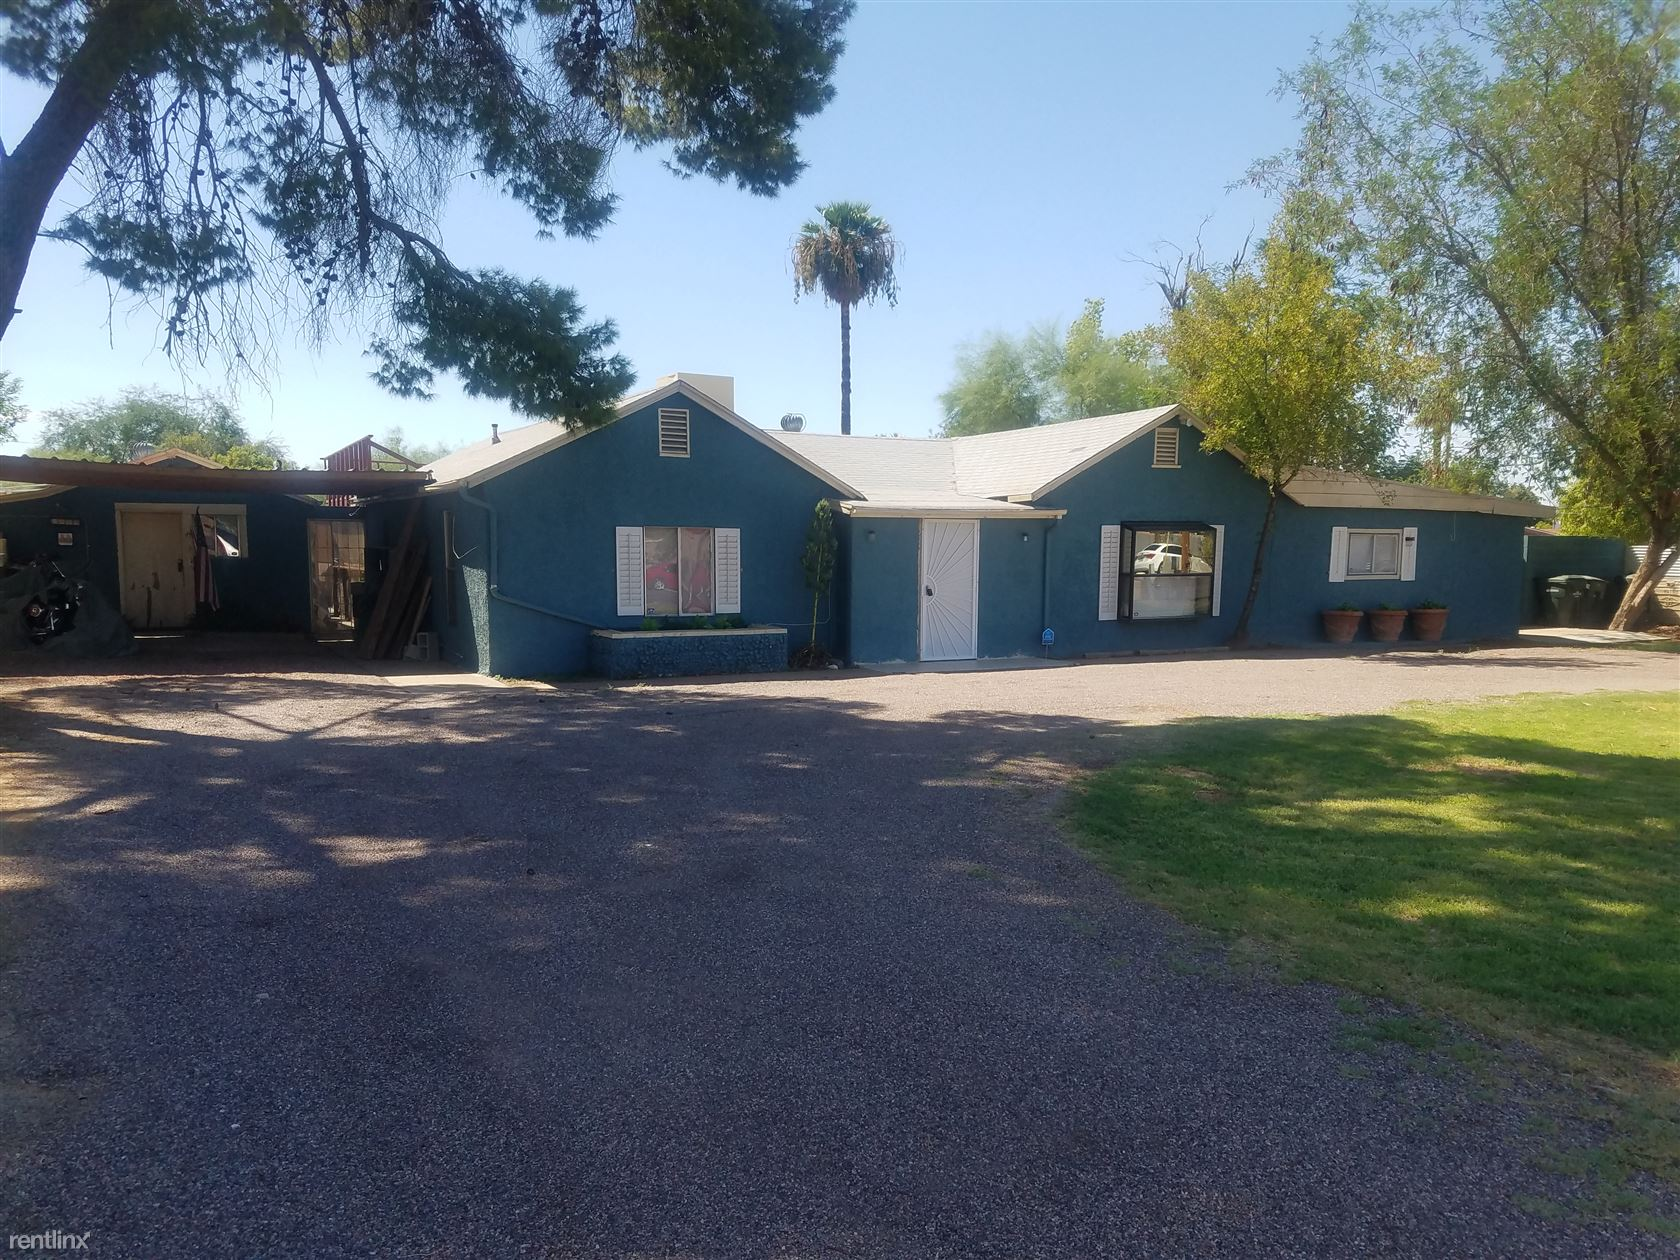 6440 S. 7th St Front - 2100USD / month